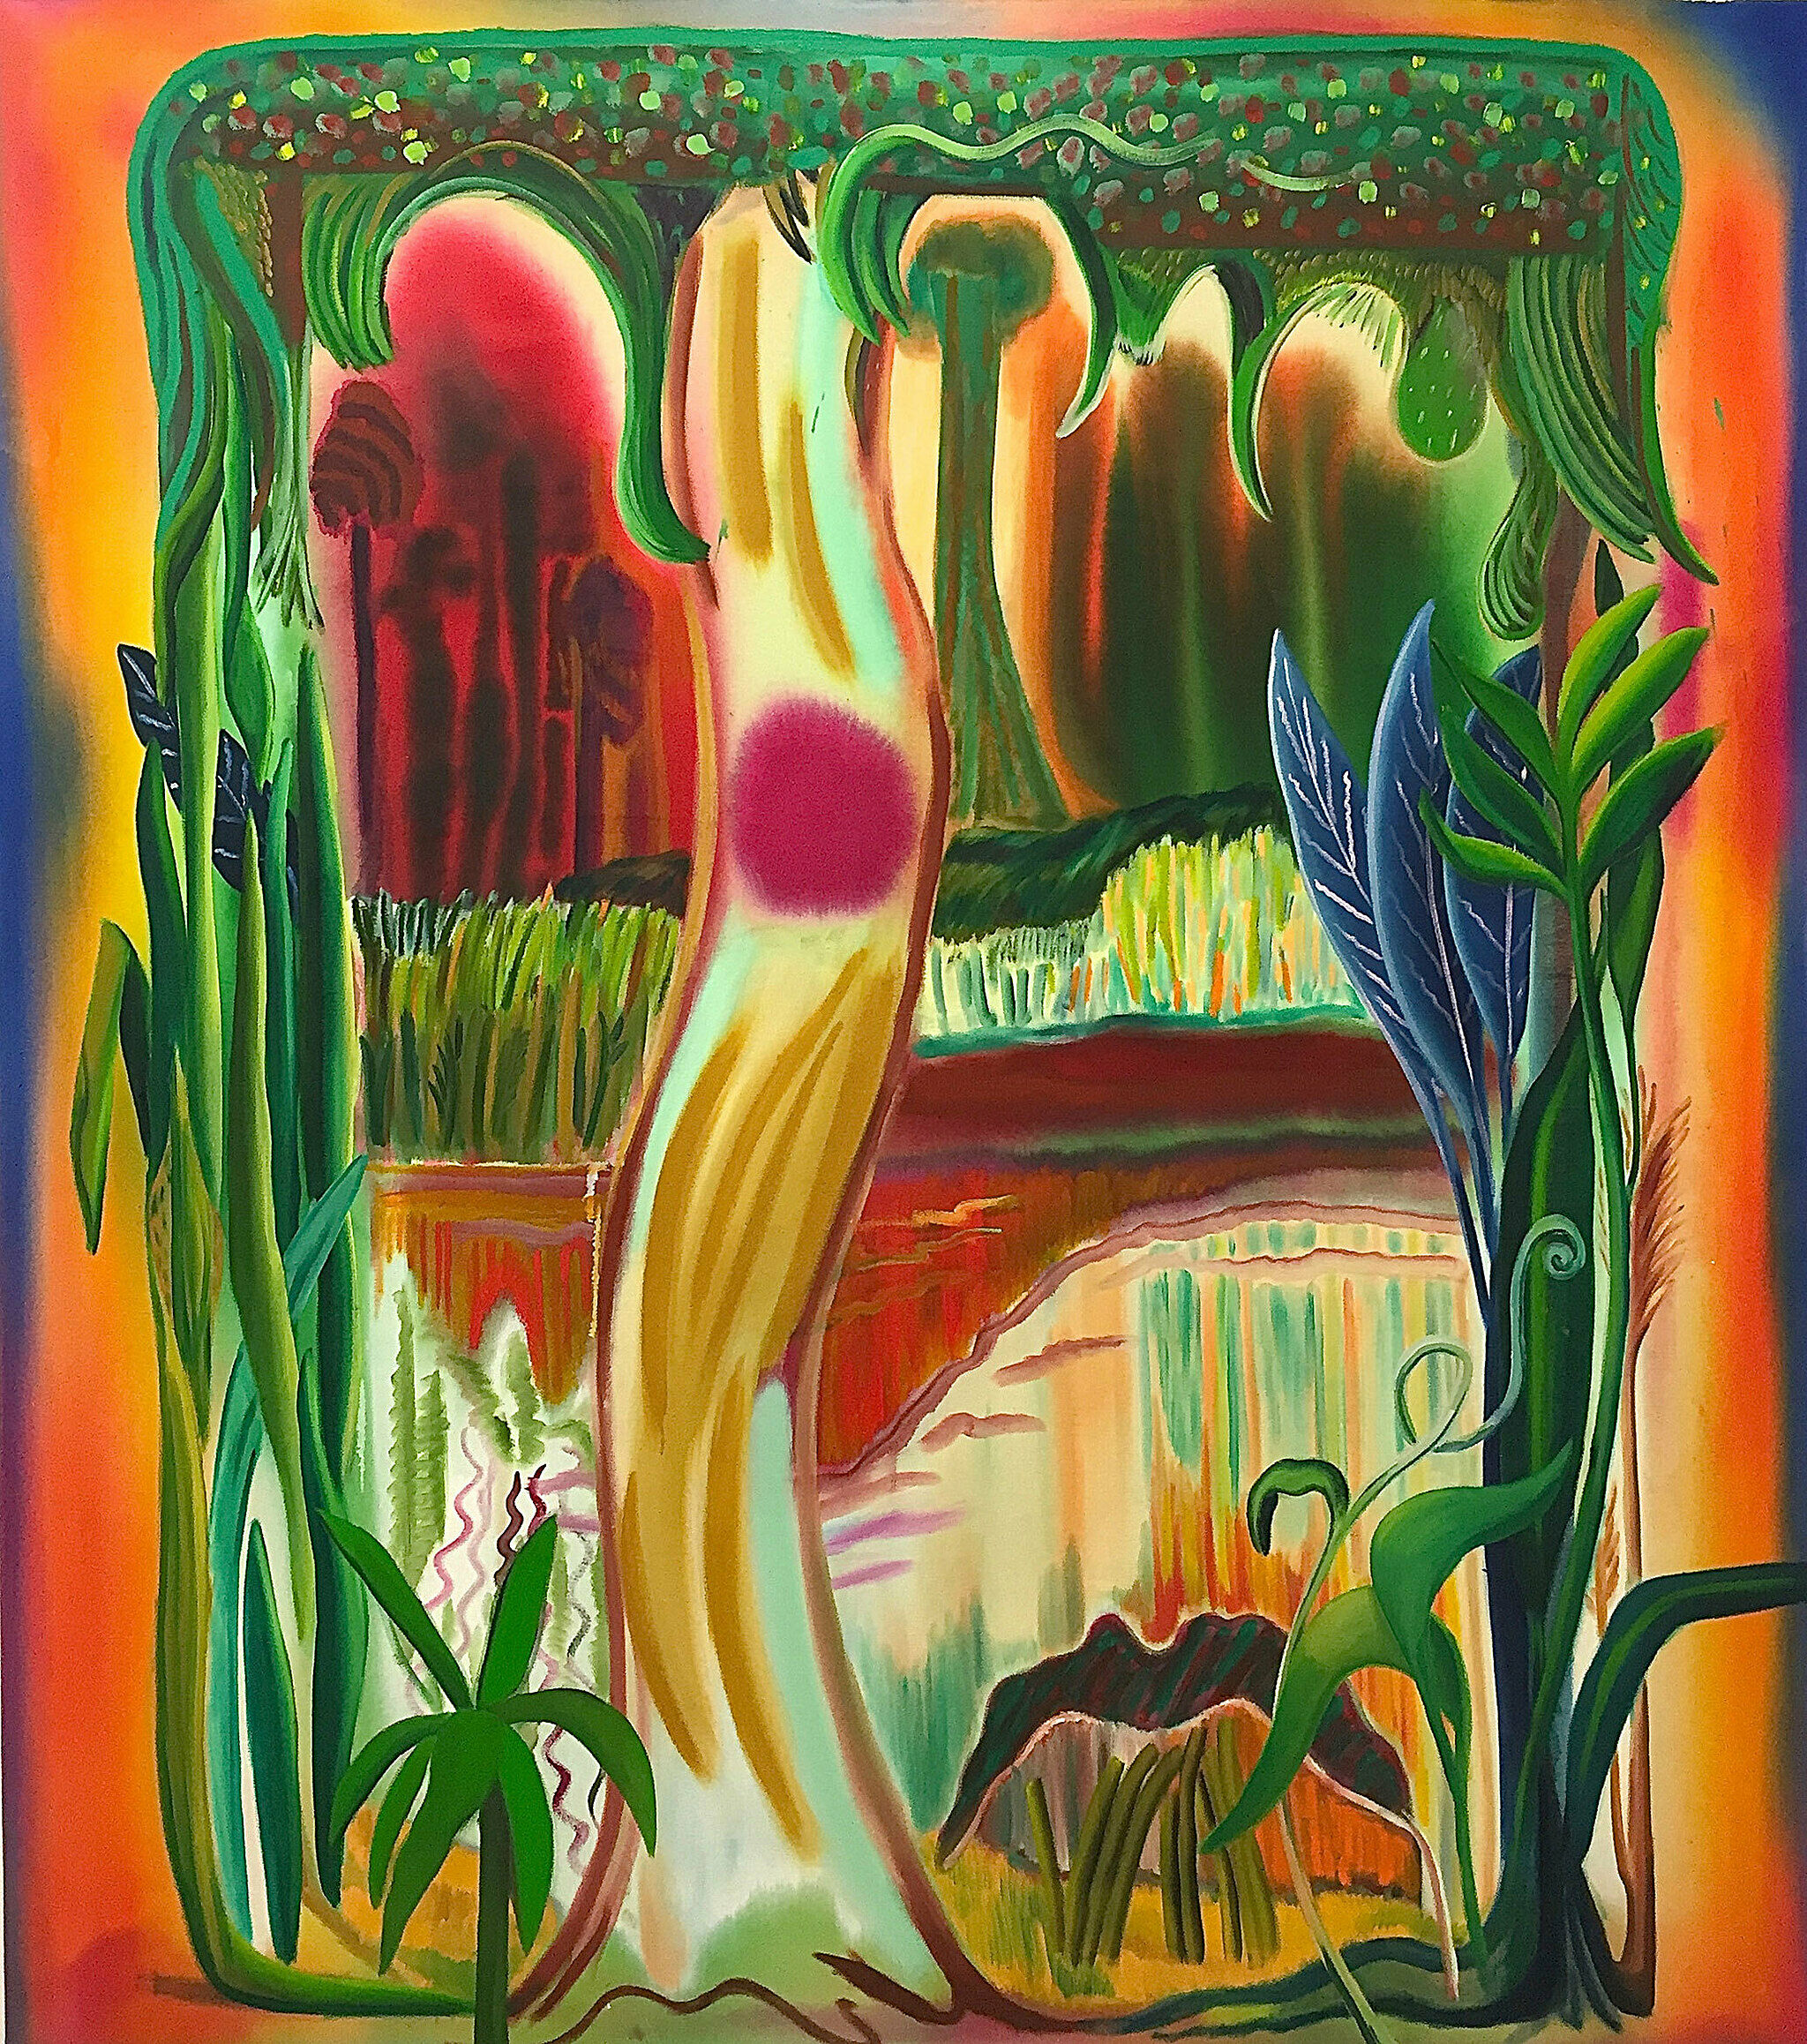 An abstract landscape in bright green, orange, and red.